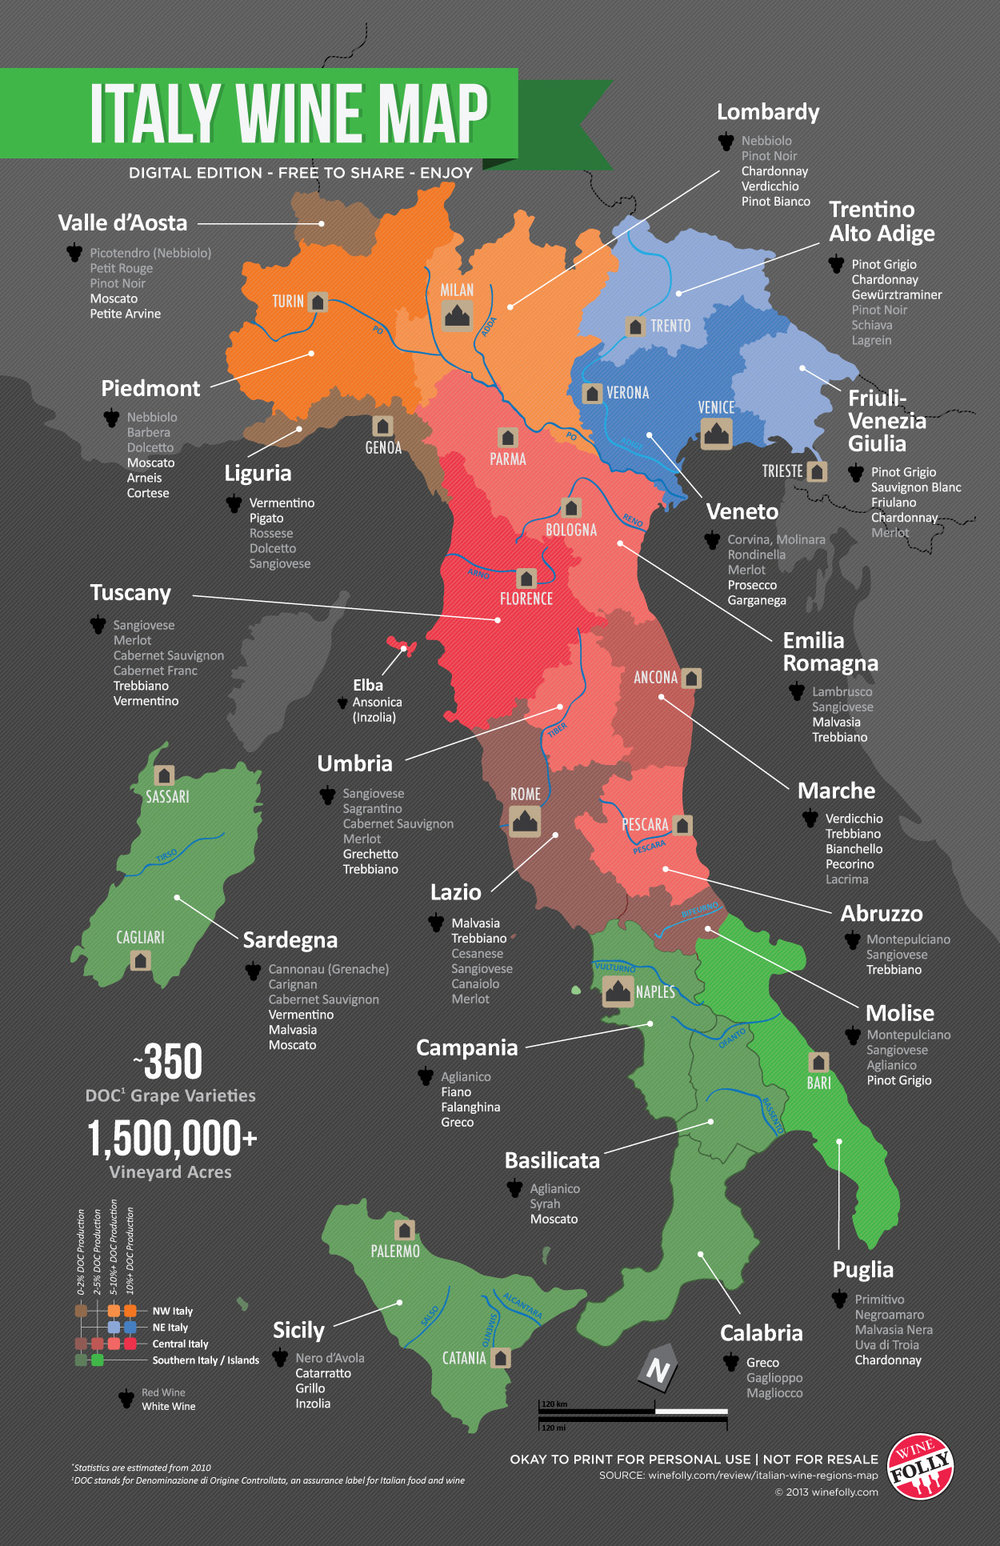 Source: http://winefolly.com/review/italian-wine-regions-map/